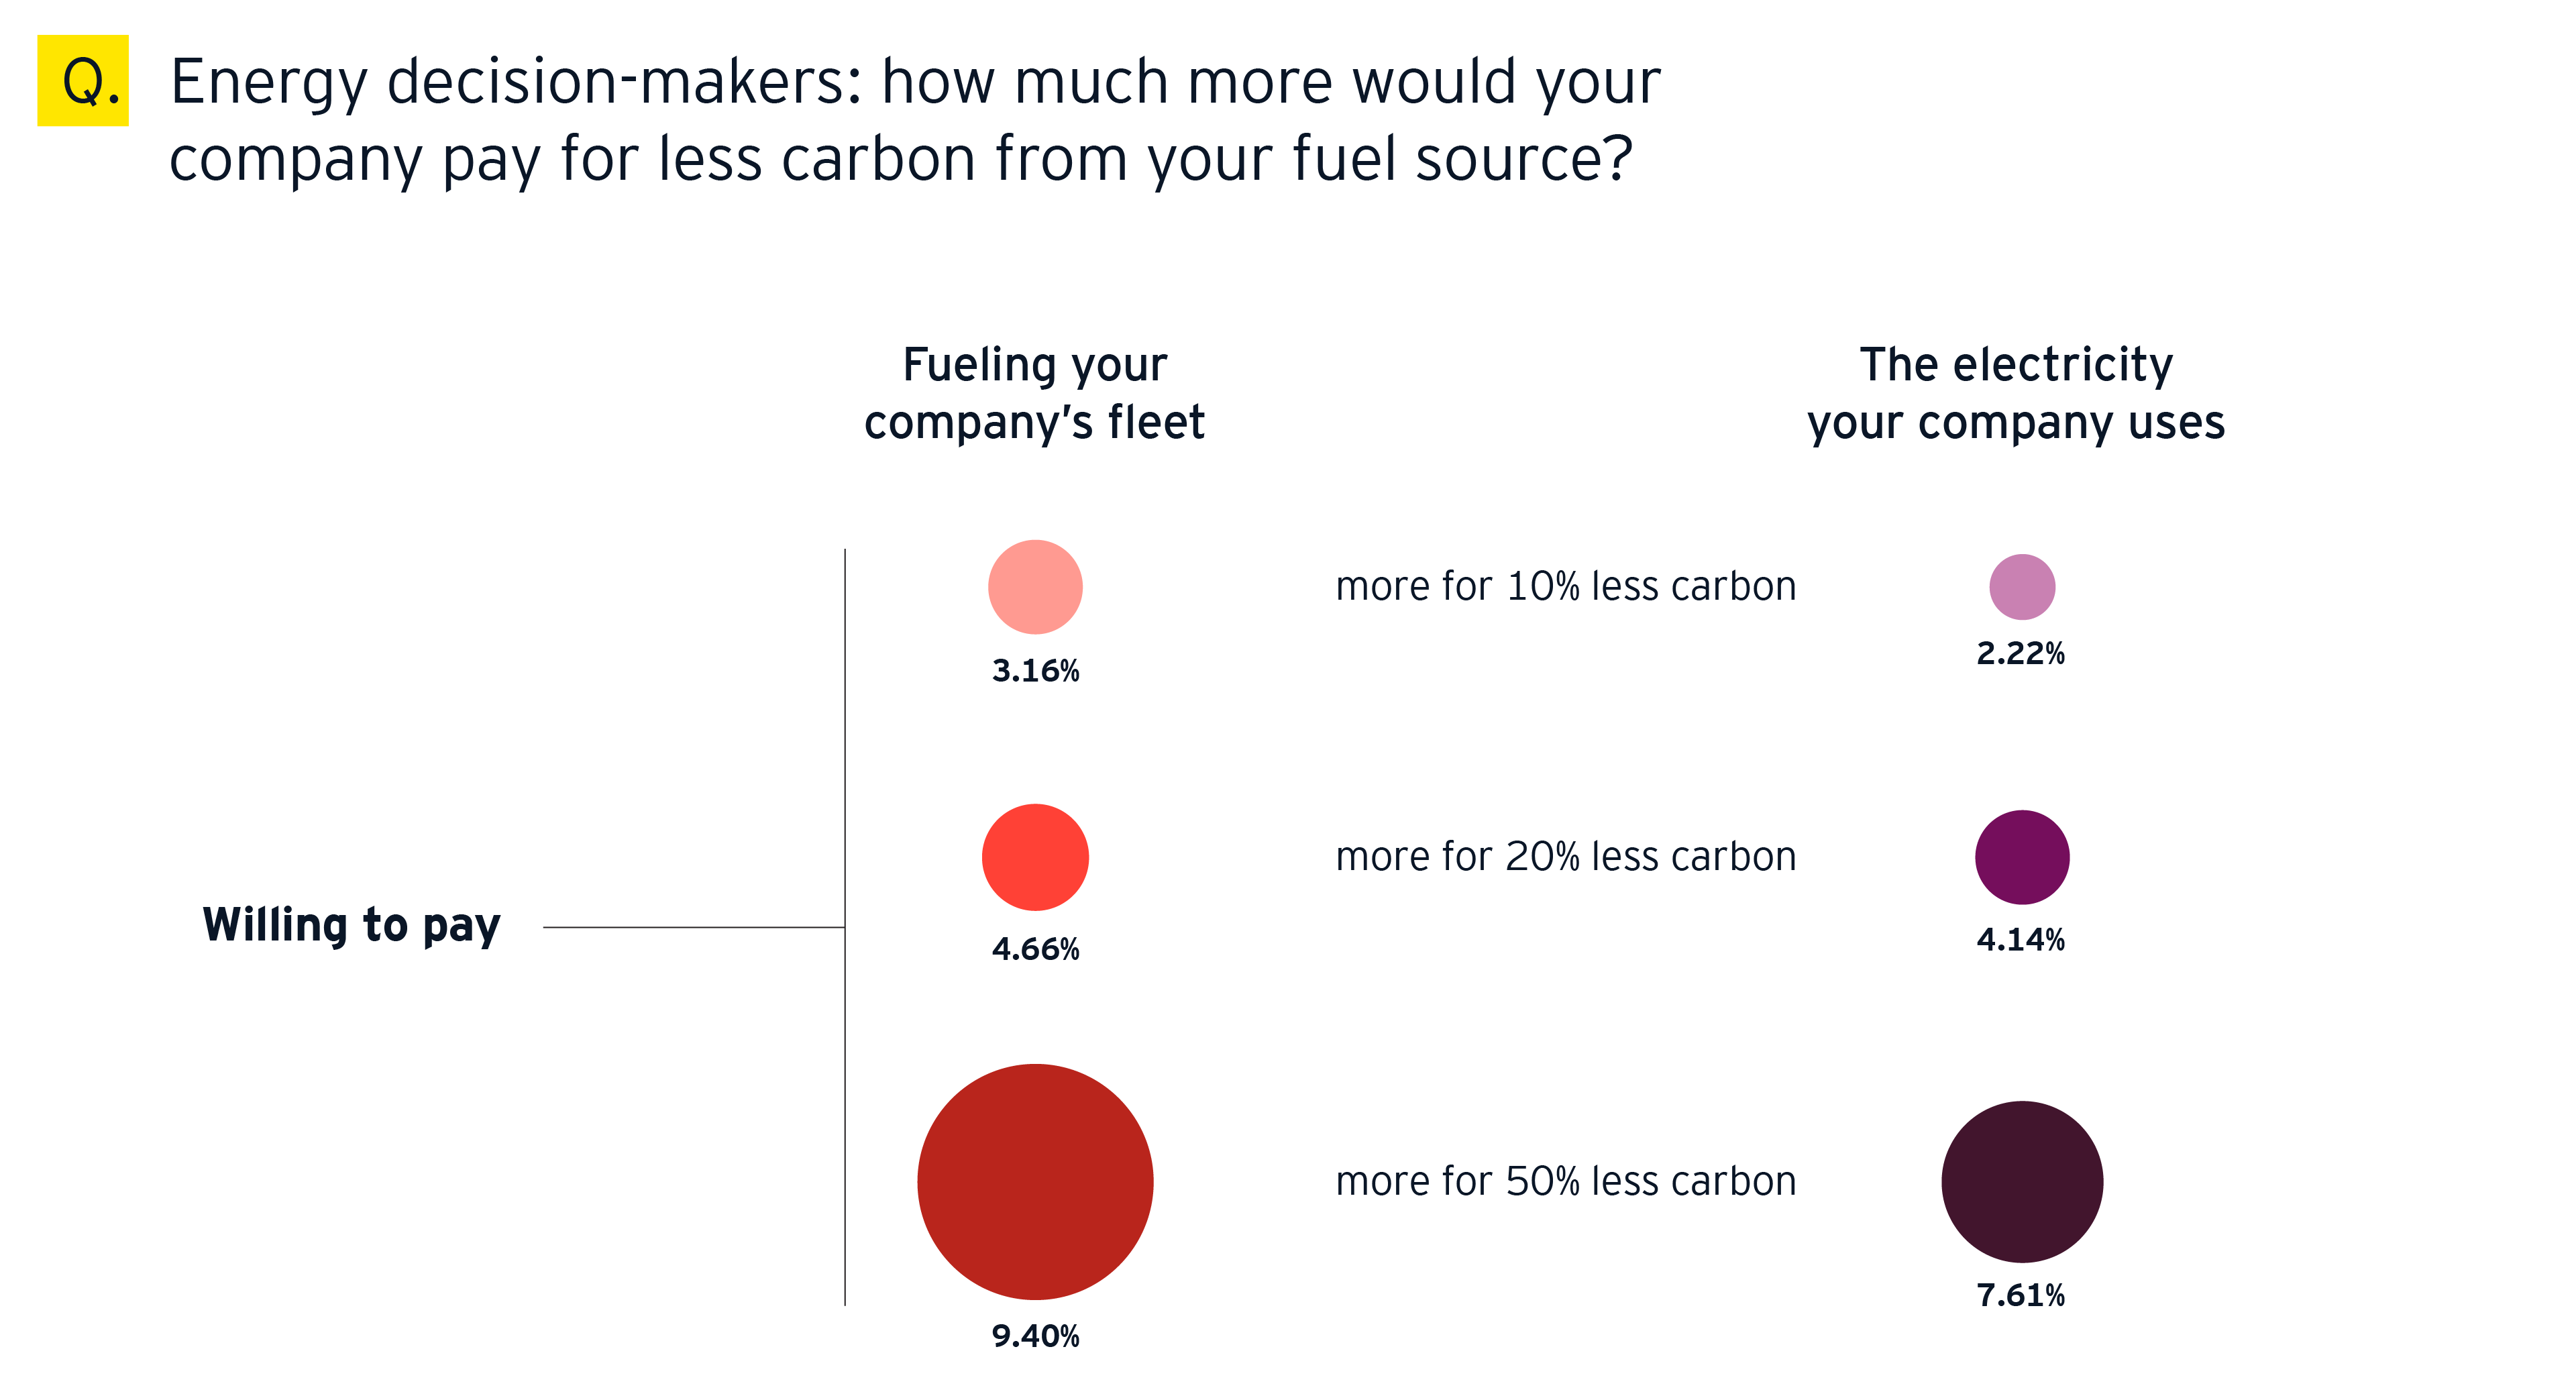 Energy decision-makers: how much more would your company pay for less carbon from your fuel source?